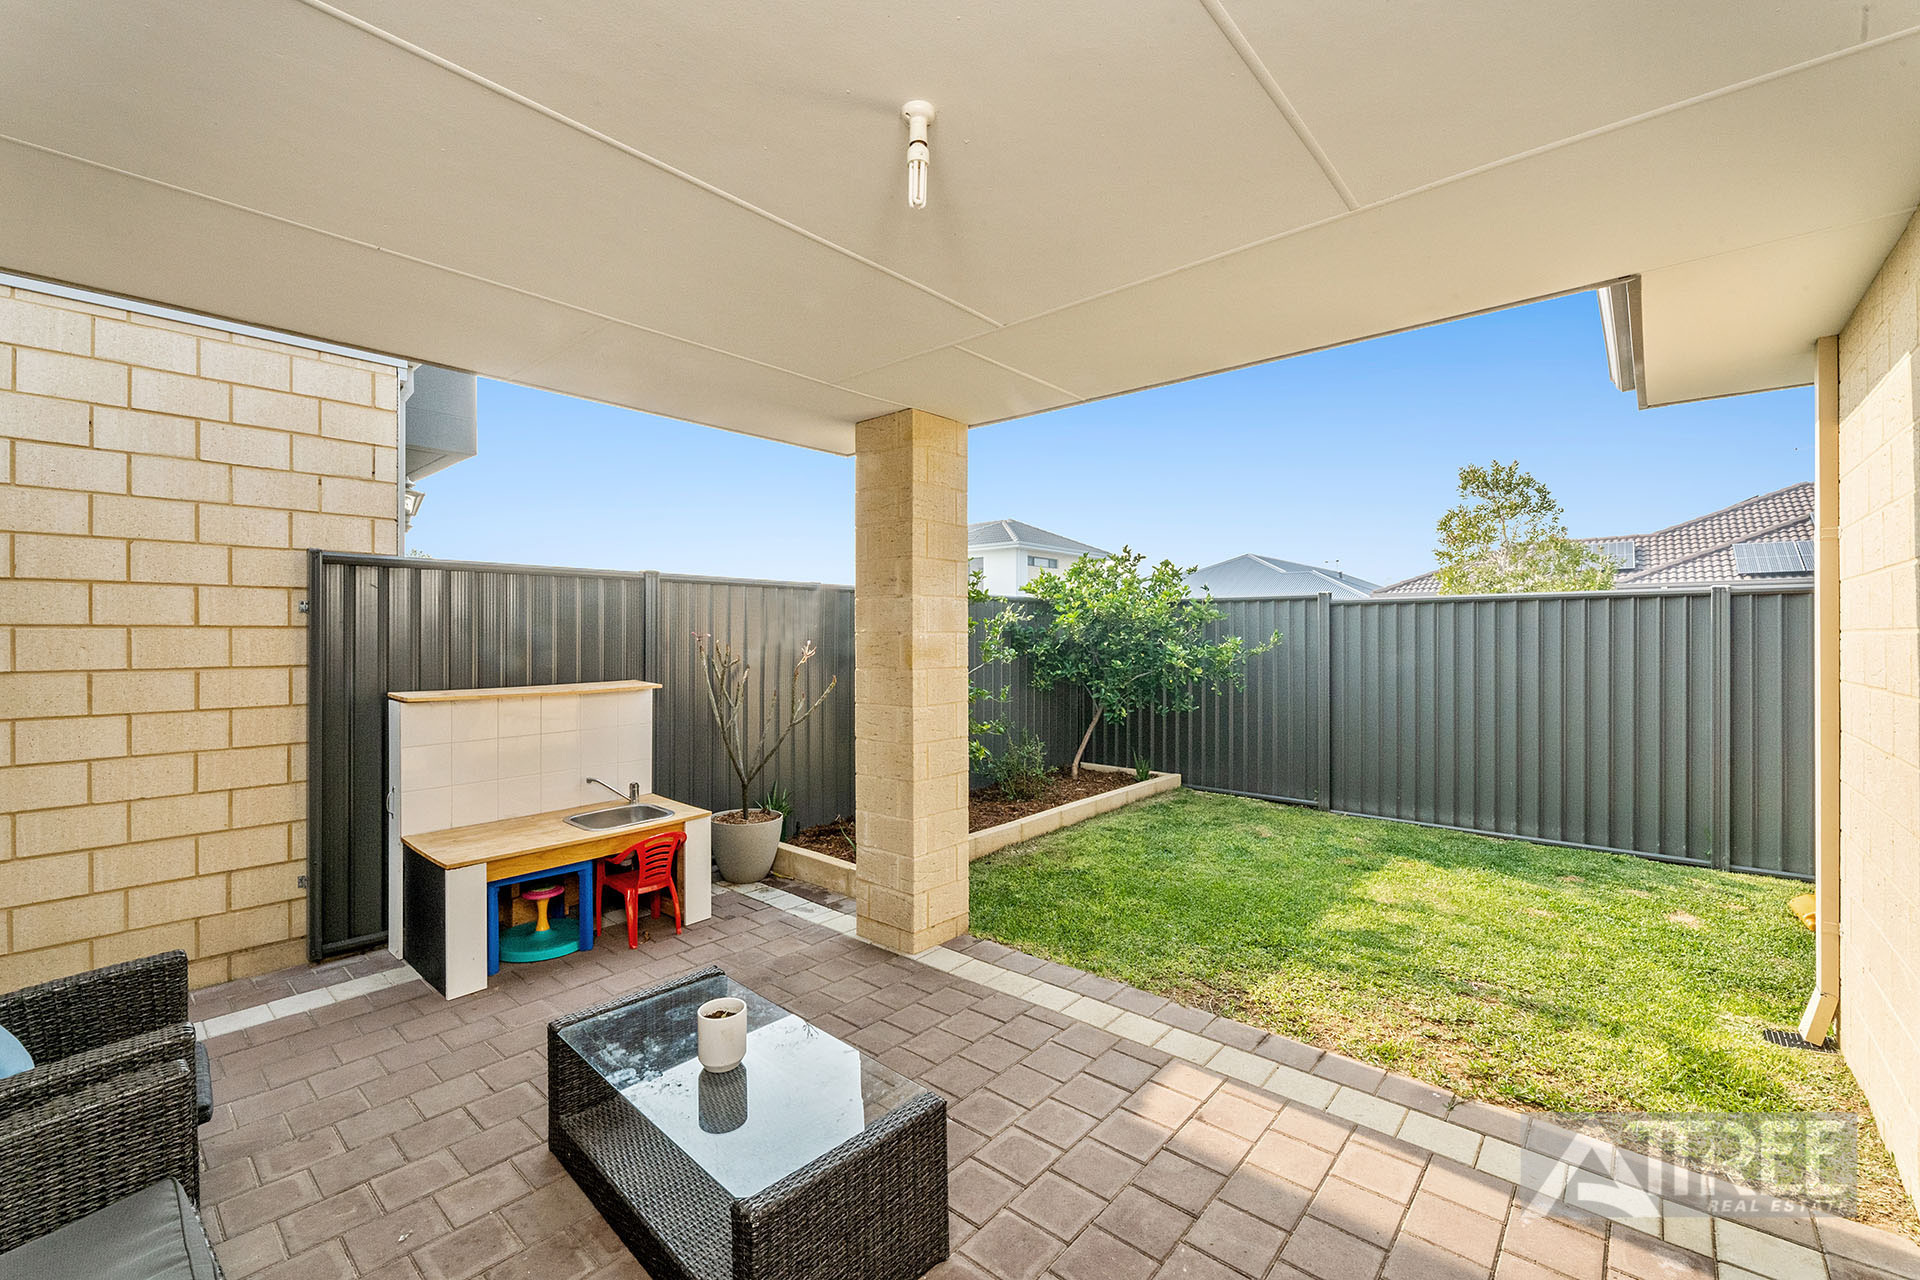 Property for sale in HARRISDALE, 21 Nikon Road : Attree Real Estate